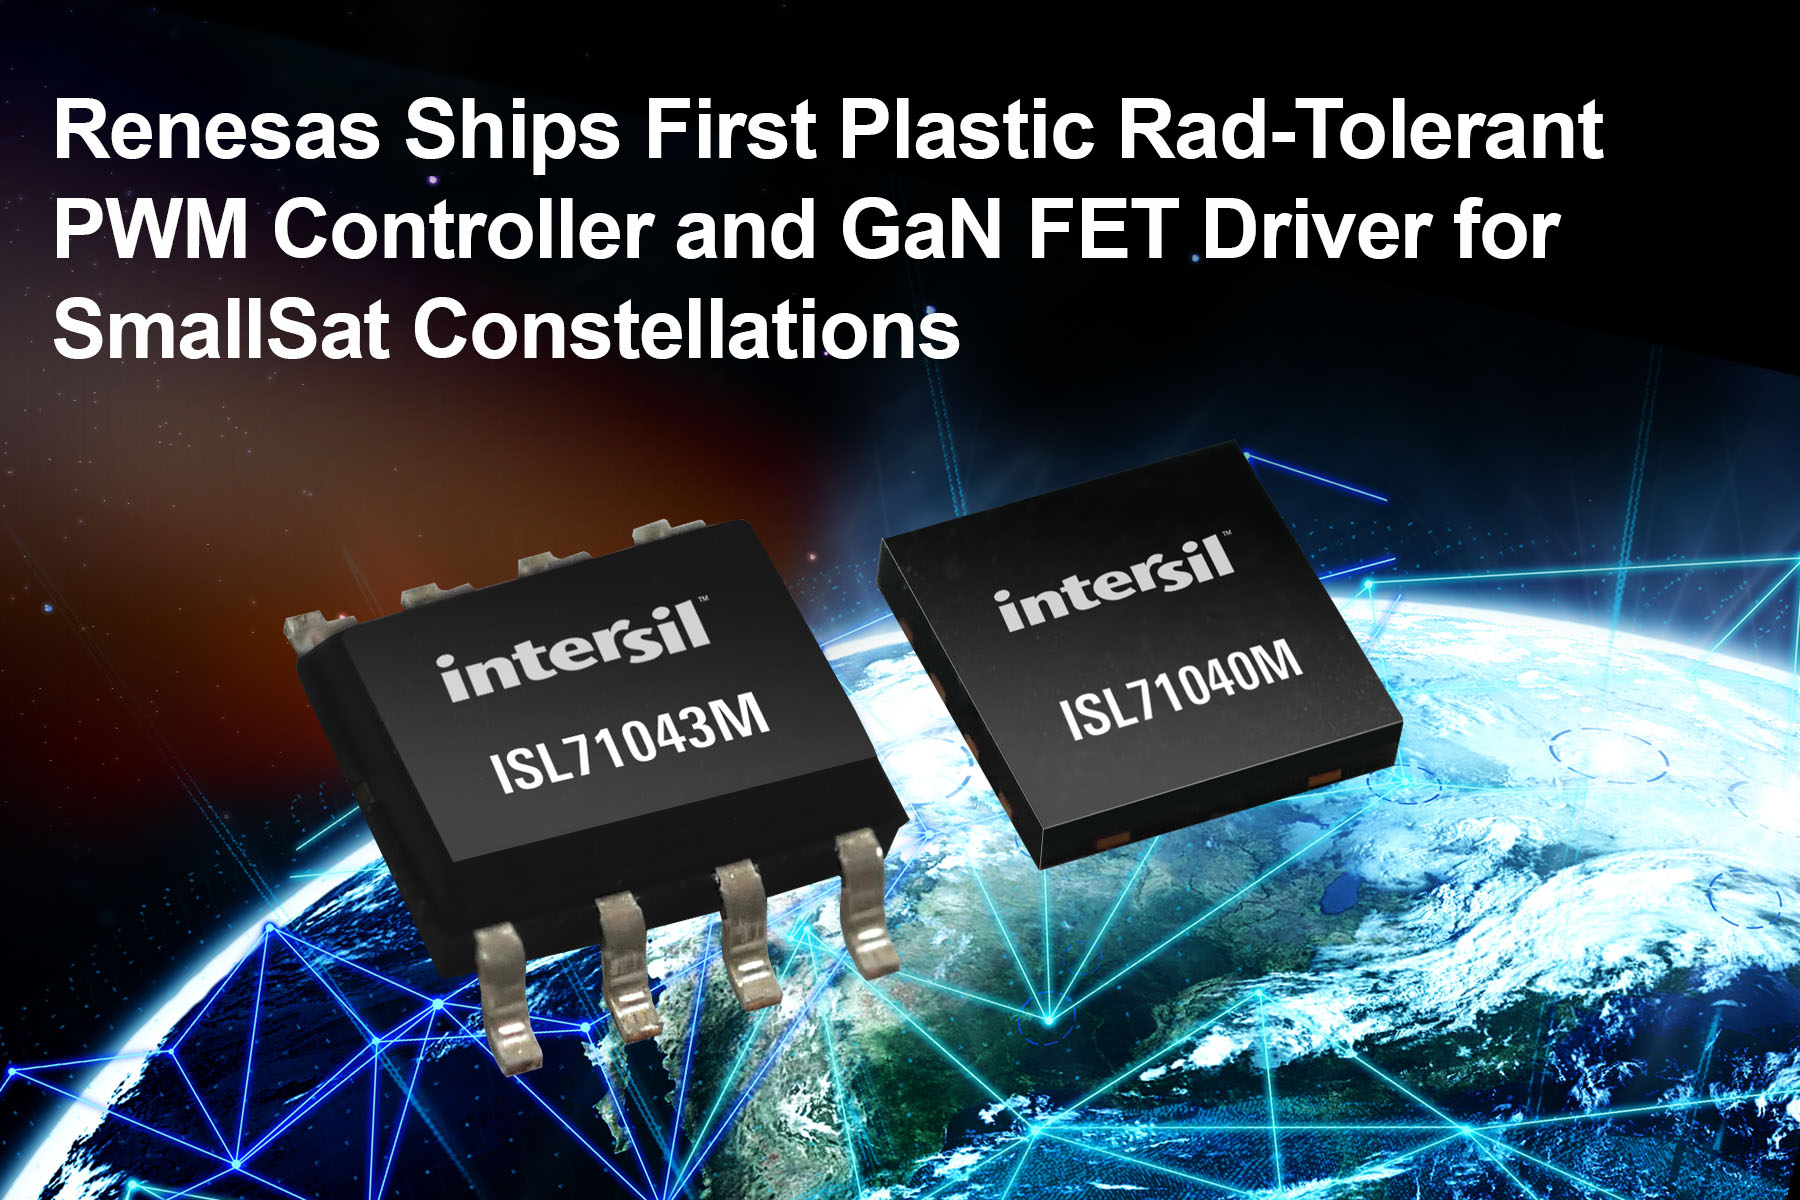 PWM Controller and GaN FET Driver for New Space SmallSats